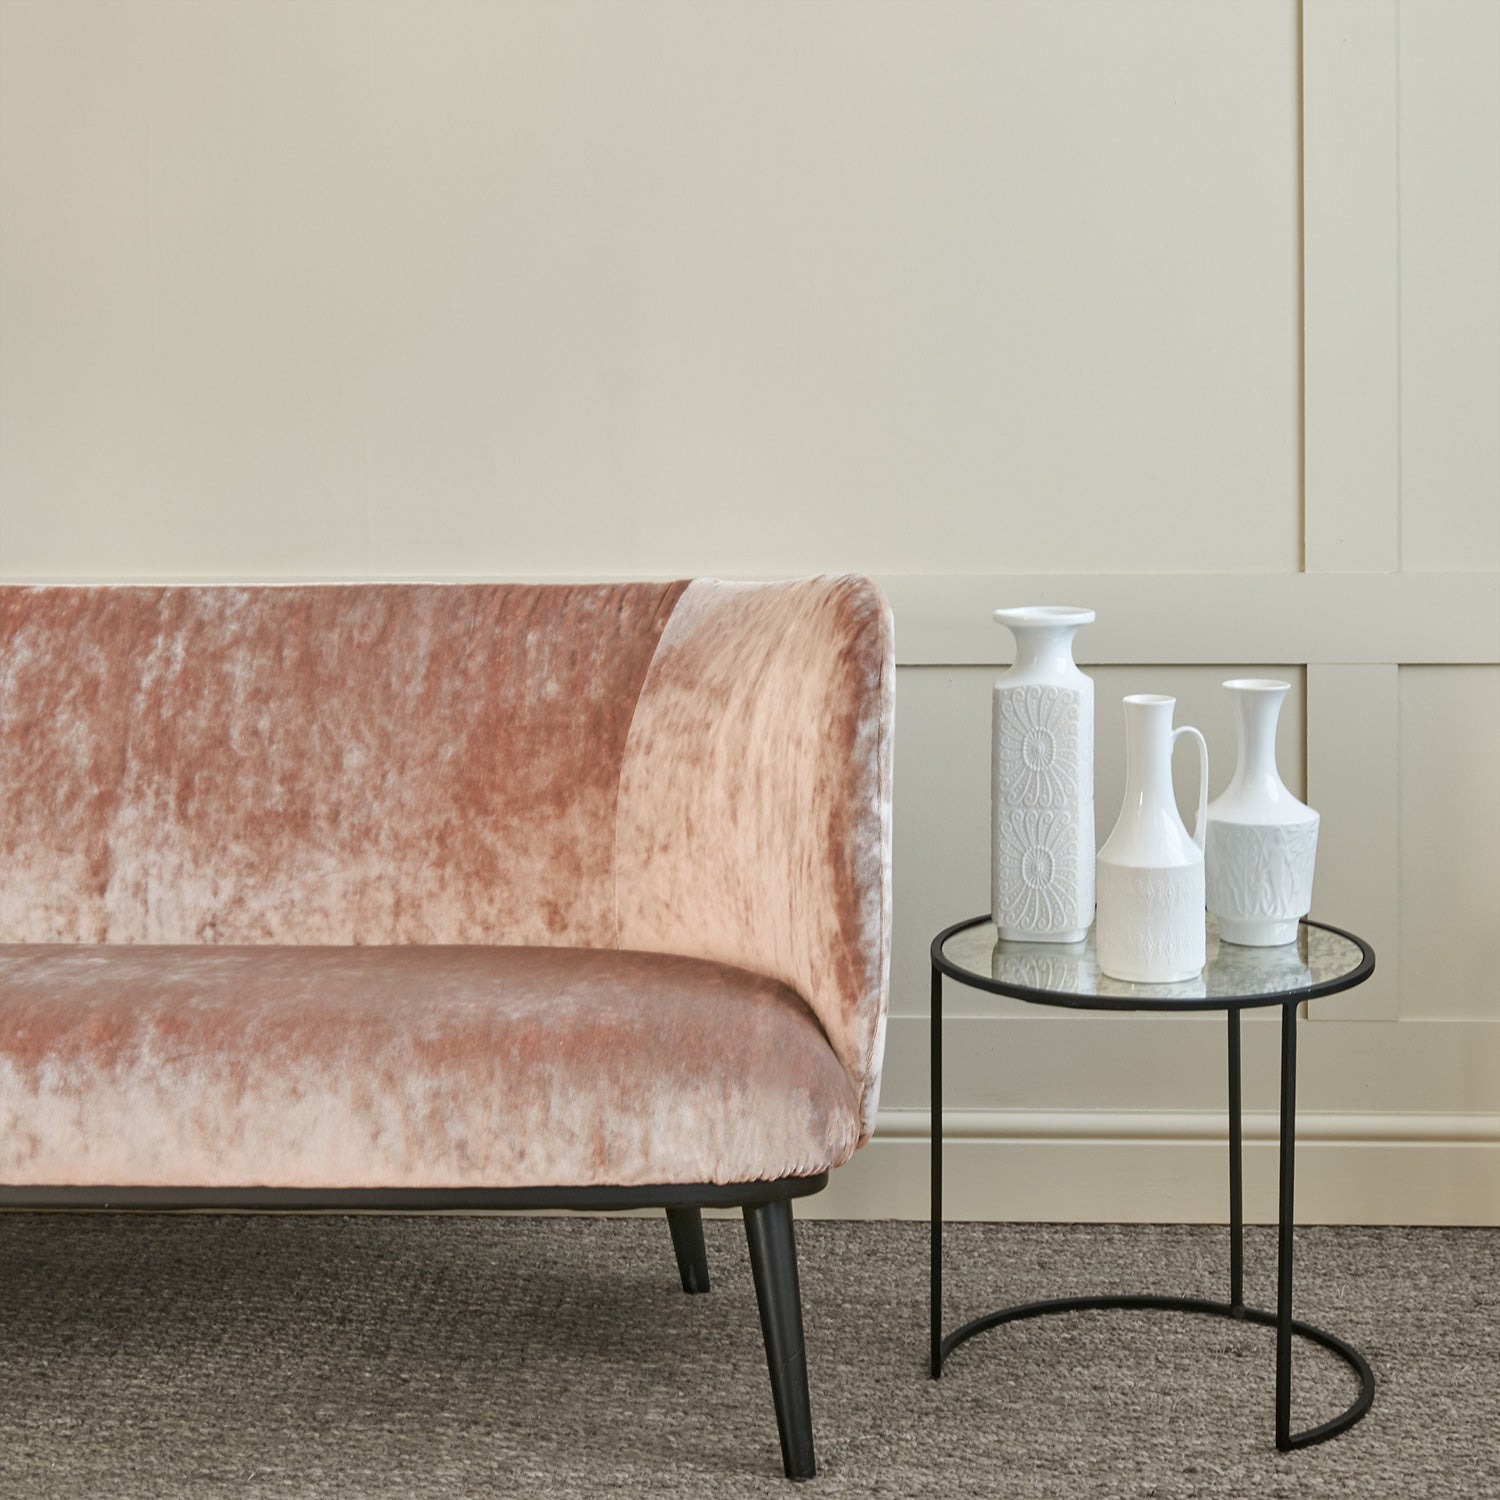 Sofa in a blush pink stain resistant crushed velvet fabric, perfect for pink crushed velvet sofa or curtains